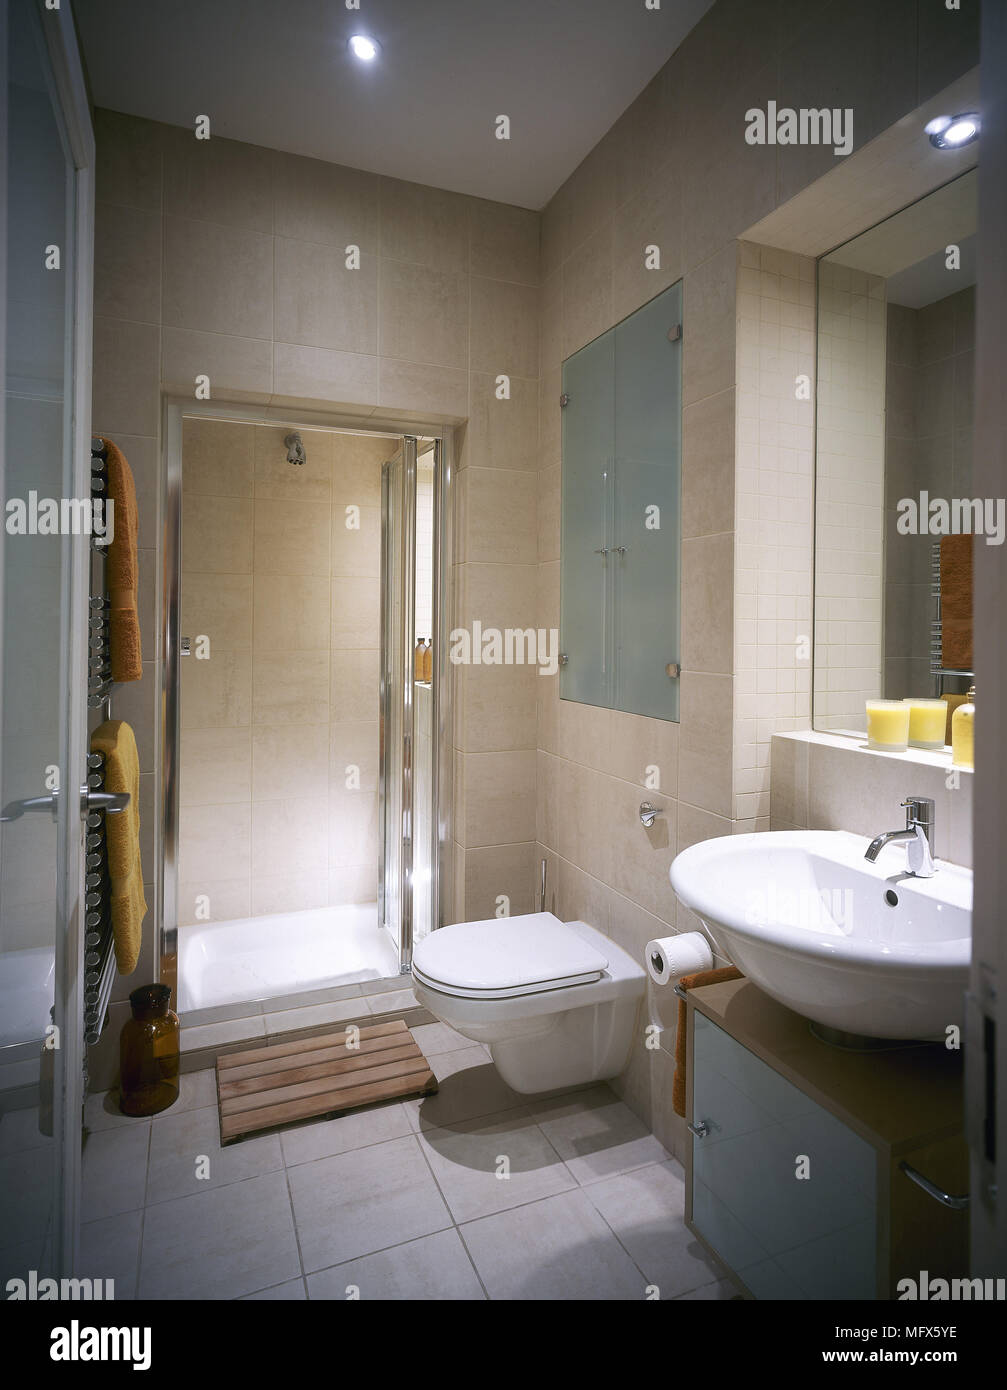 Modern Bathroom With A Tiled Floor Shower Room Toilet Mirror And